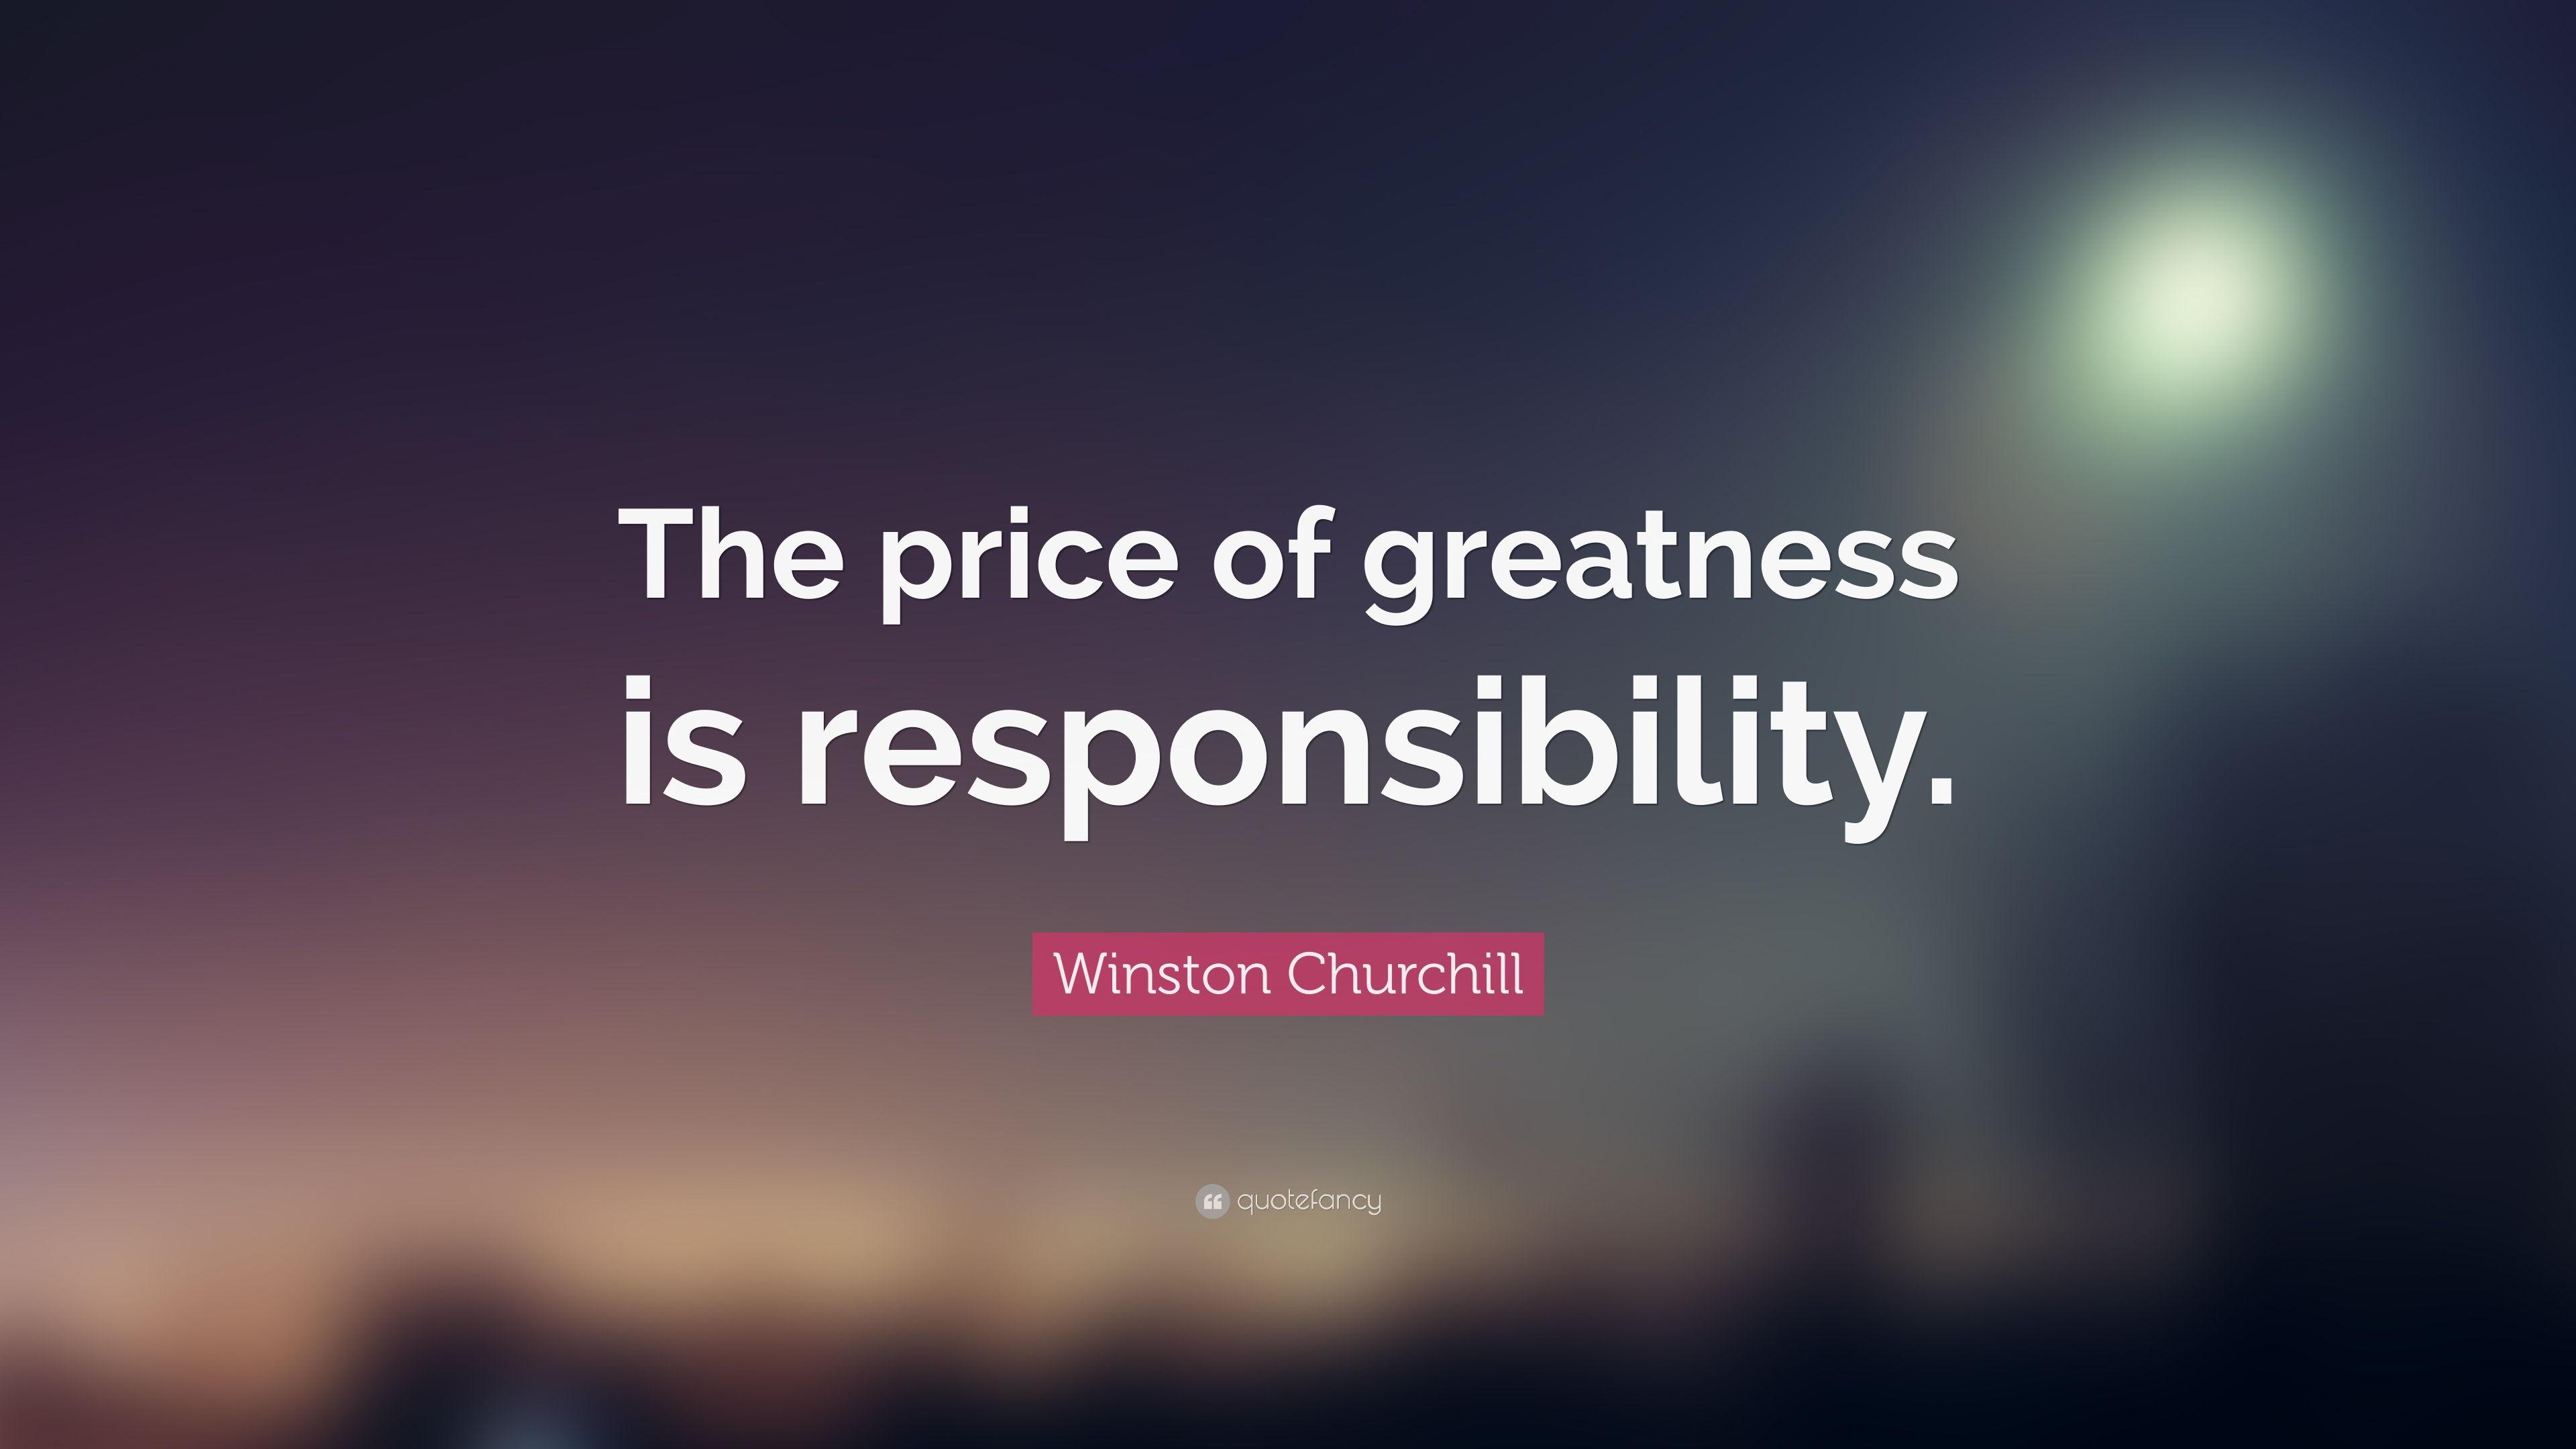 The price of greatness is responsibility